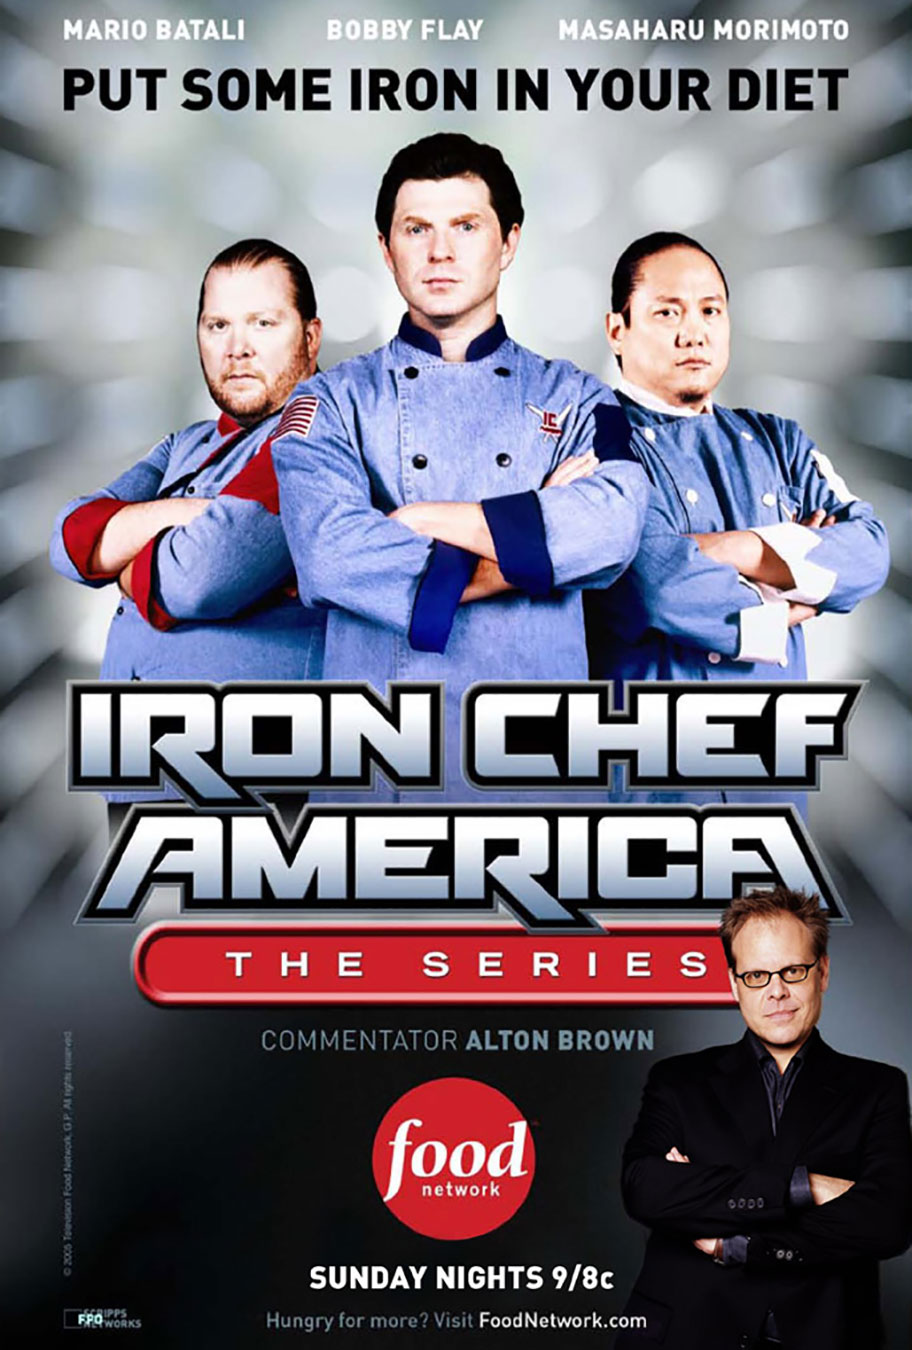 Iron chef america craig marks for Allez cuisine iron chef